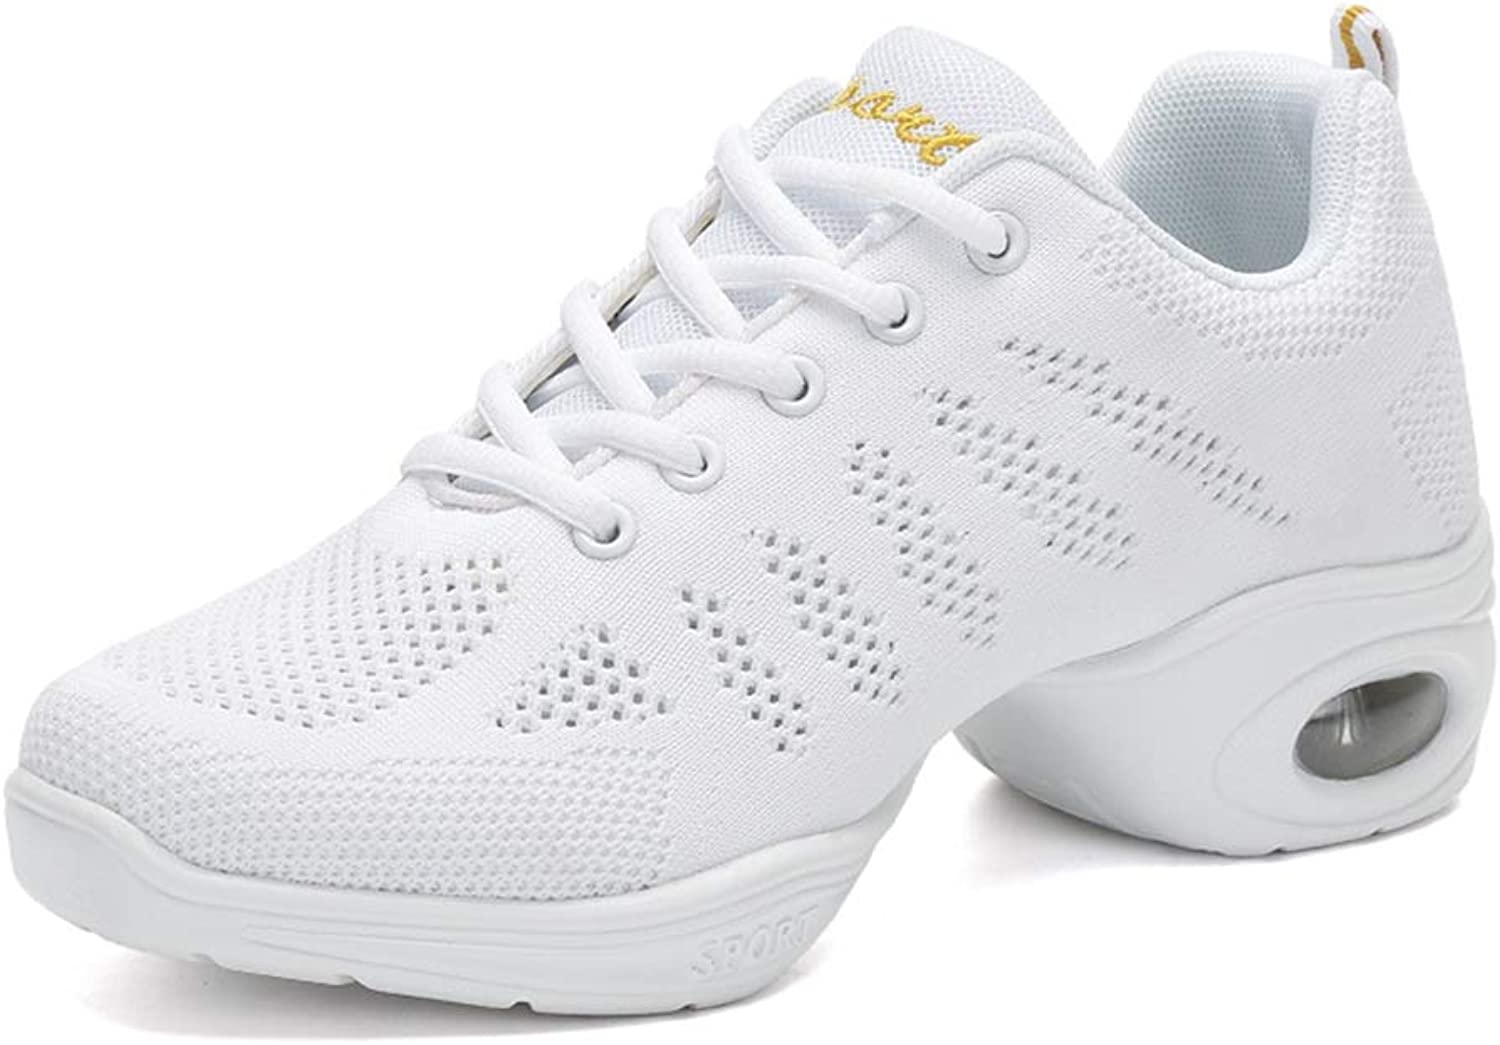 2019 Men Fashion Sneakers, Women's Breathable Weave Vamp Modern Performance Dance shoes Professional Lace Up Latin Tango Dance shoes (color   White, Size   5 D(M) US)